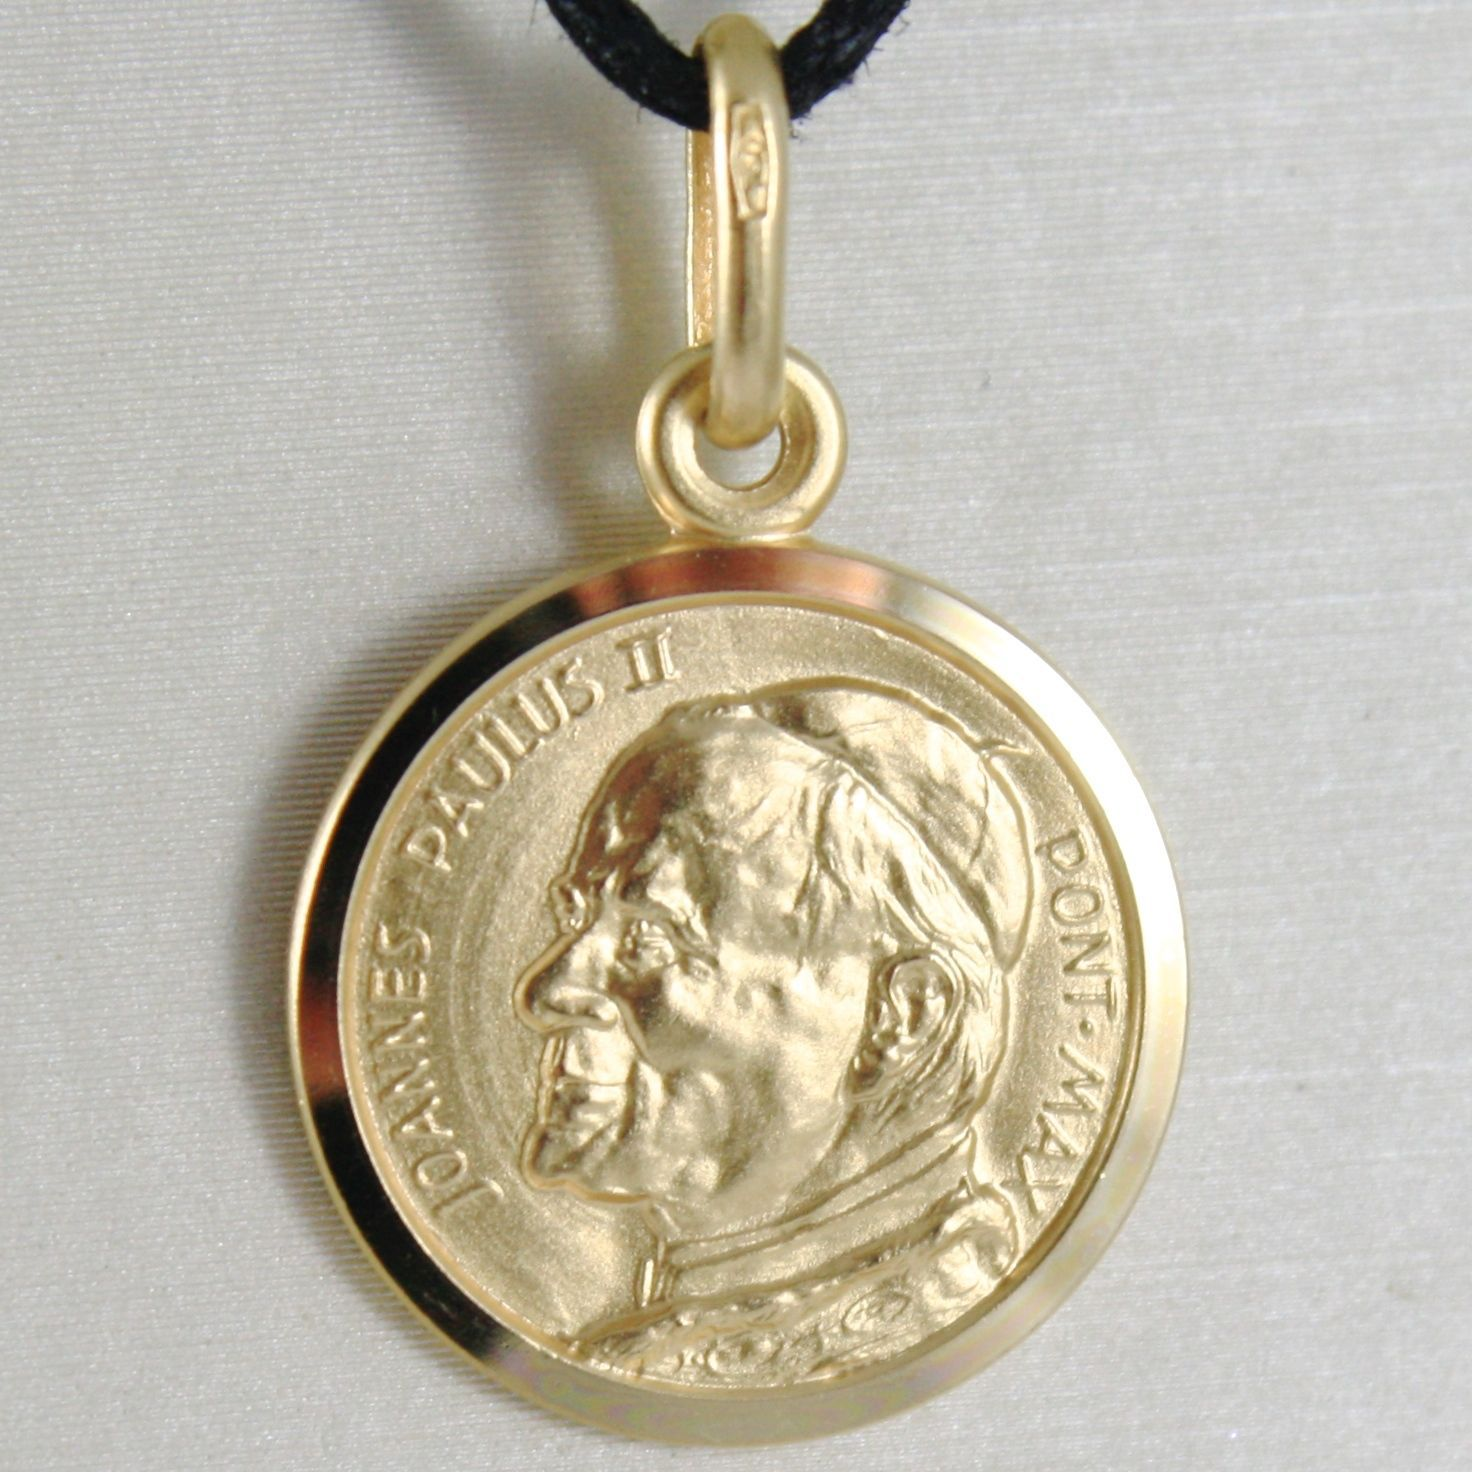 SOLID 18K YELLOW GOLD SAINT POPE JOHN PAUL II, DIAMET. 15 MM MEDAL MADE IN ITALY